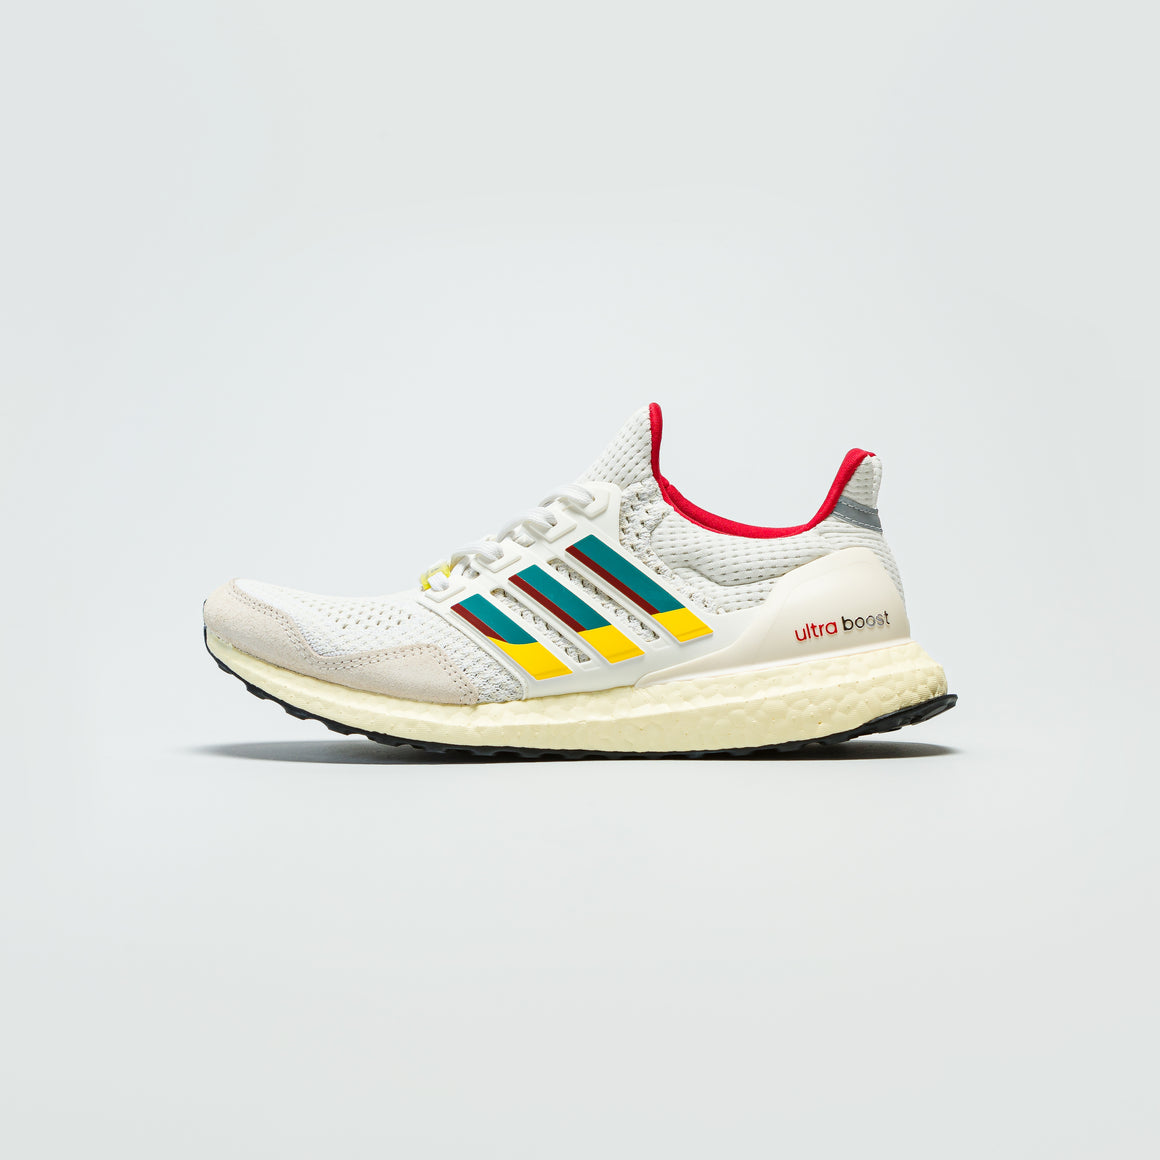 adidas - UltraBoost 1.0 DNA - Cream White/EQT Green - Up There